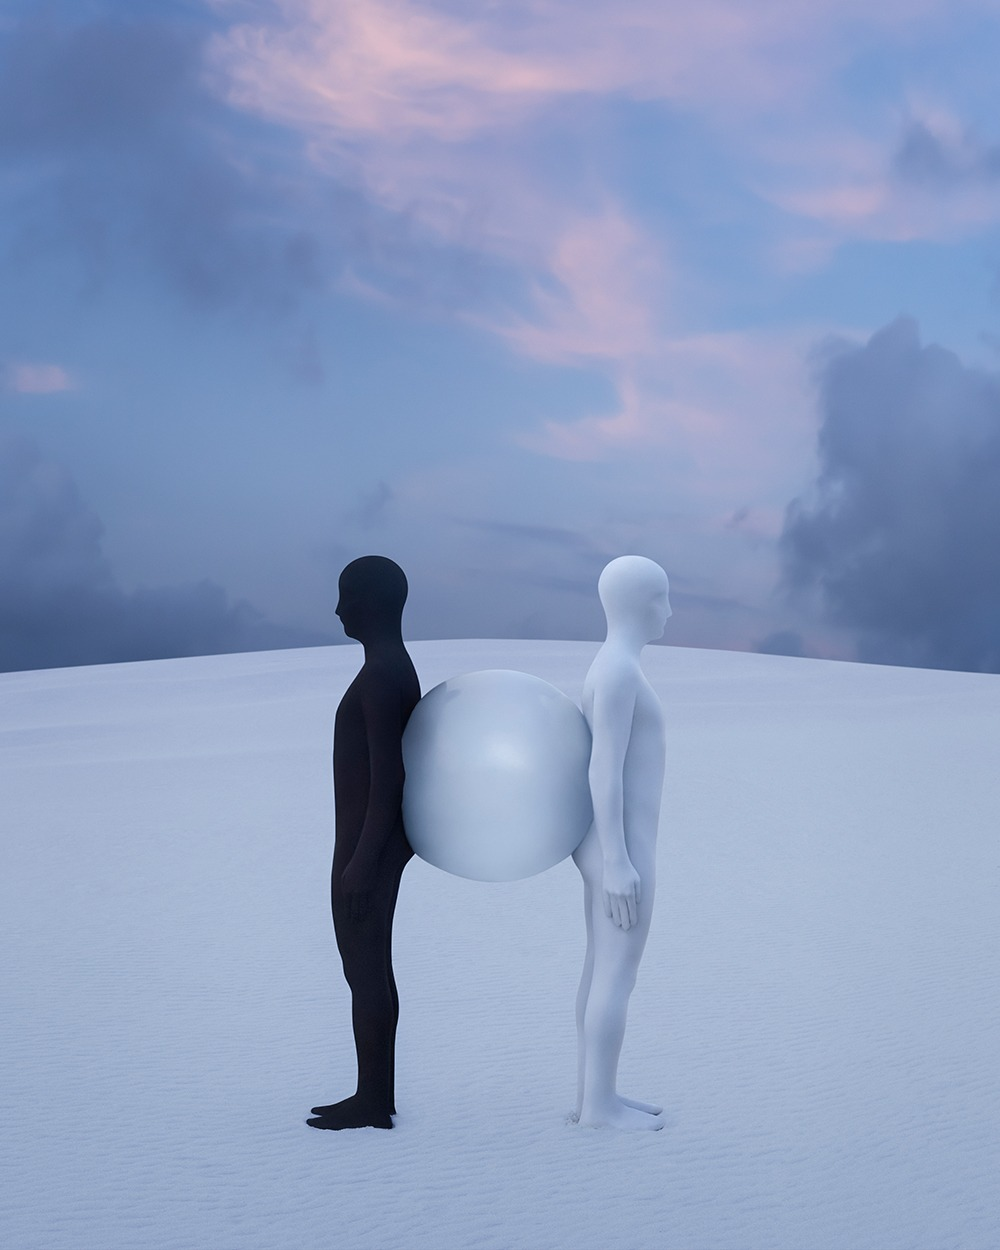 Gabriel Isak photo: Two people and a ball in white desert